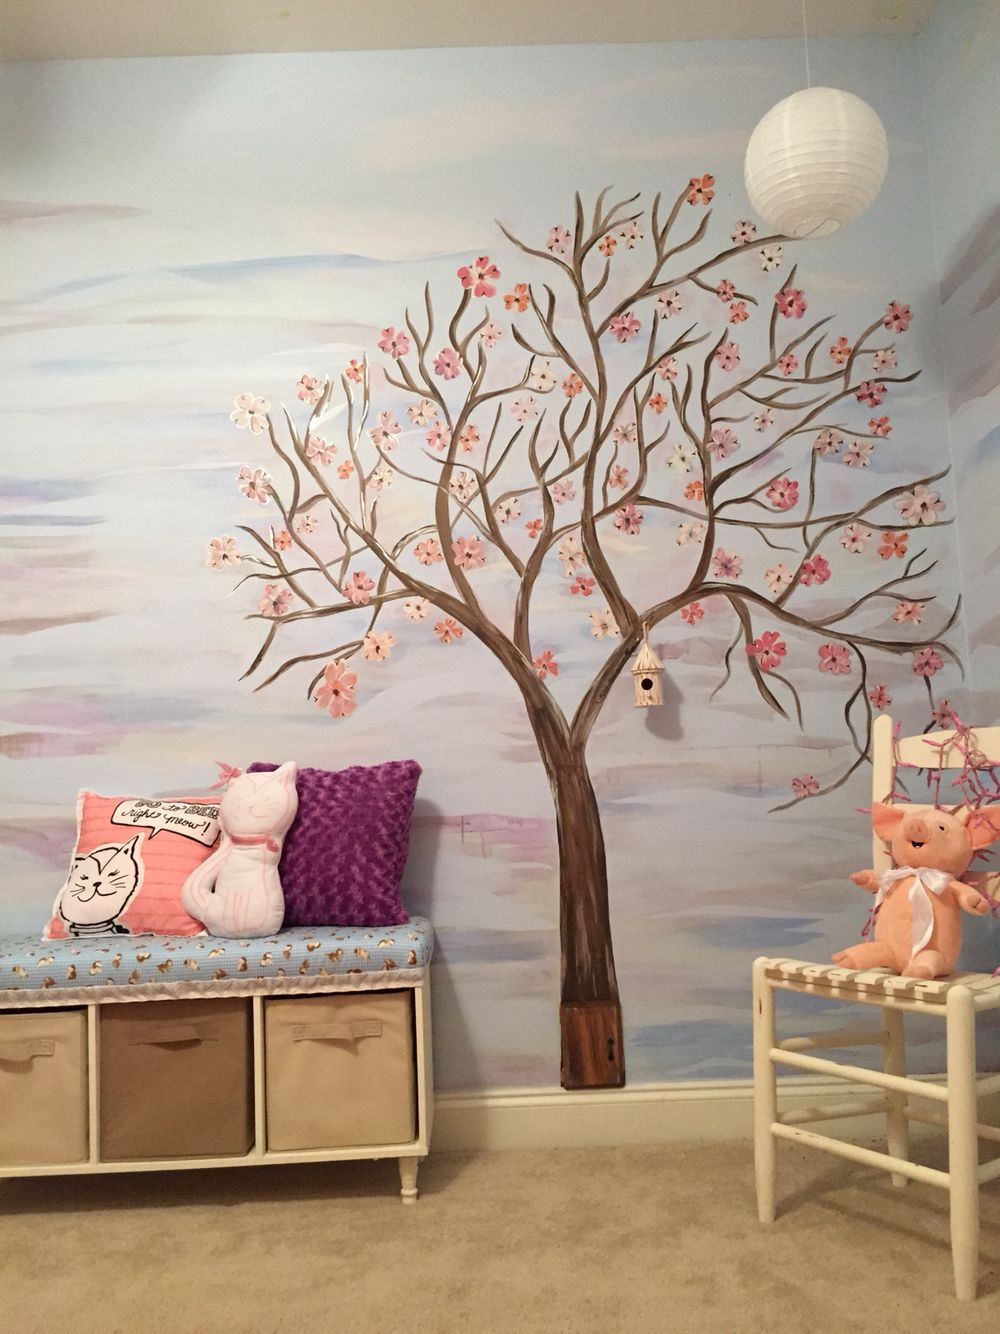 Wall art tree mural, hand painted tree mural, DIY bench, girls room, toddler room, hand painted chair